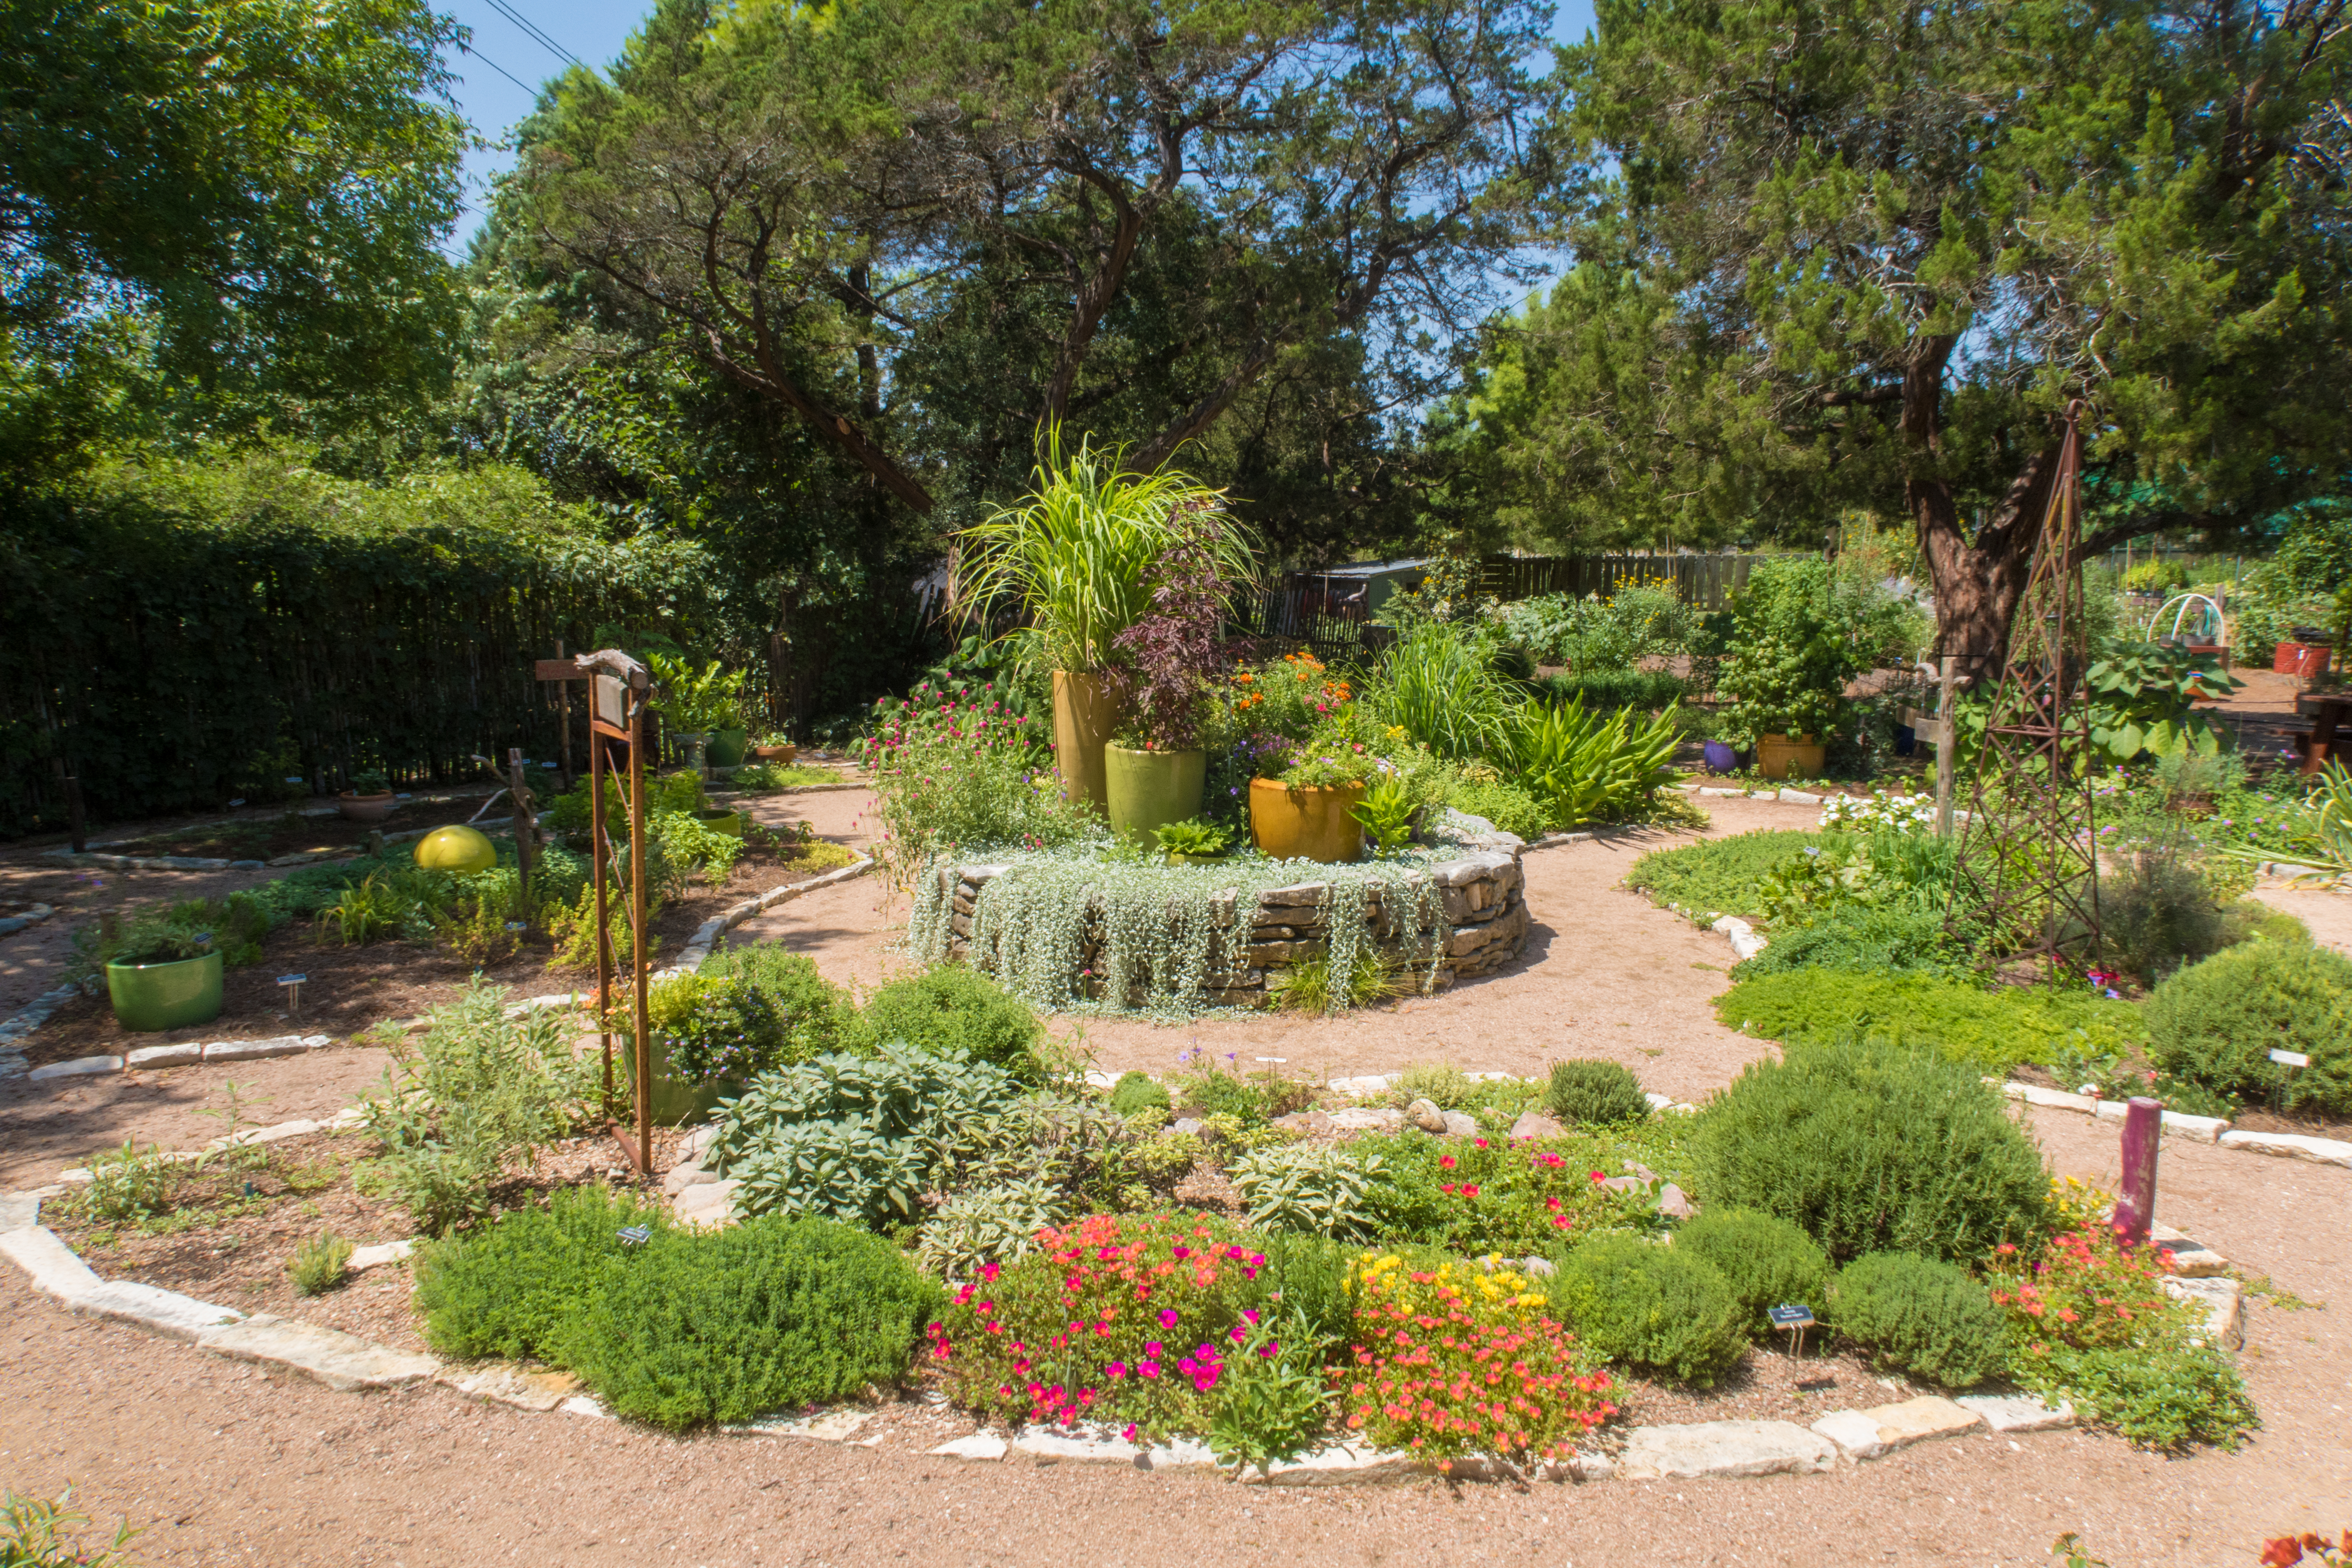 A semiformal garden with wide, curving paths of decomposed granite circular planting beds—raised and ground-level—full of blooming plants with a variety of shapes and textures. Large leafy trees are in the background.